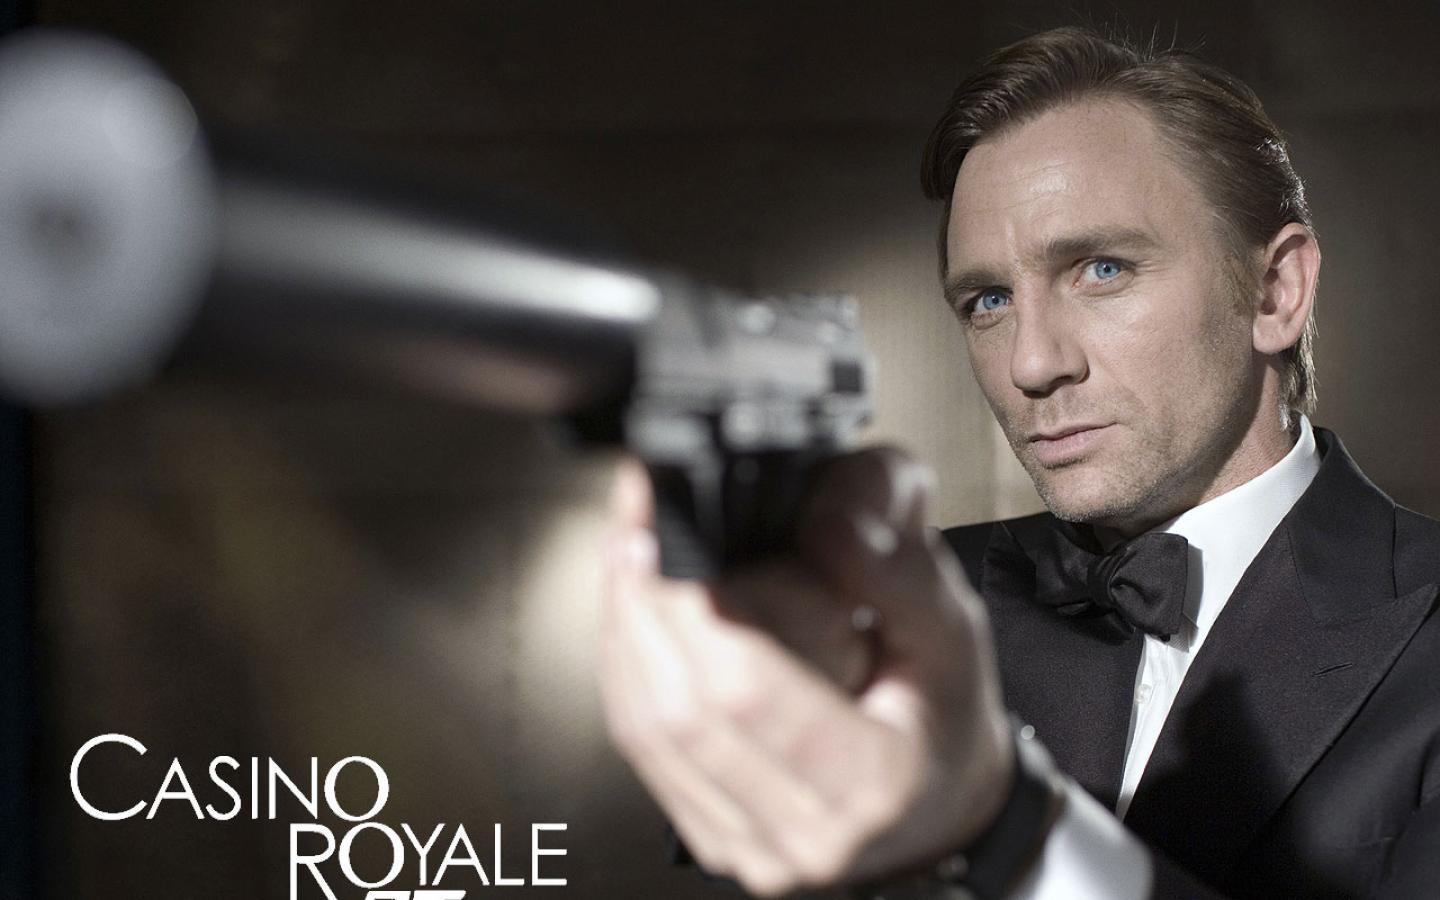 best movie casino royale 1440x900 wallpaper 1 more casino royale